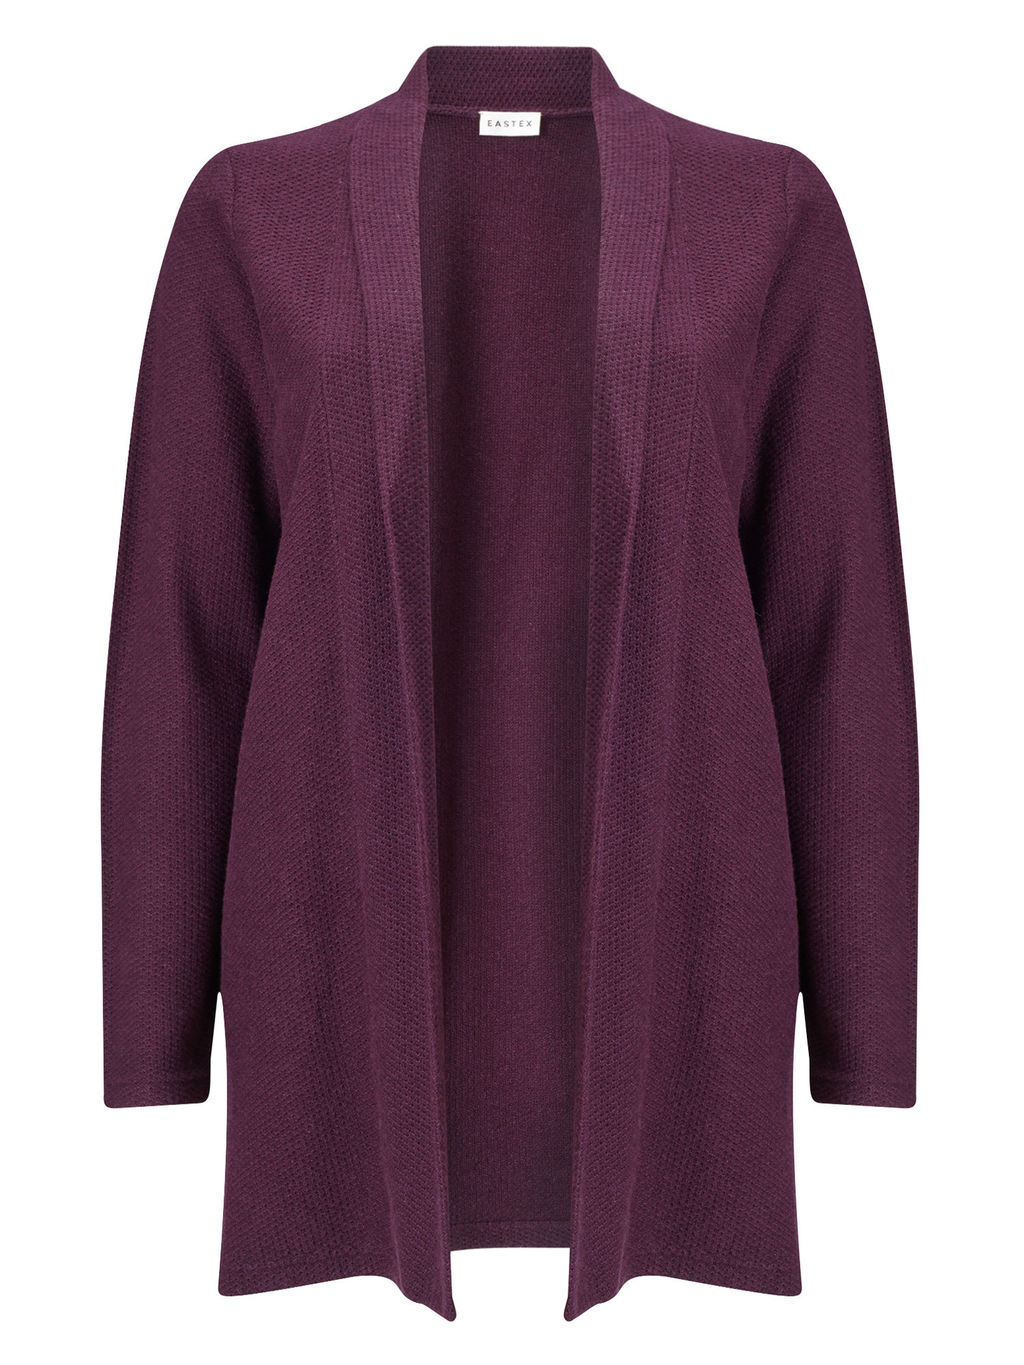 Textured Cardigan - pattern: plain; neckline: shawl; style: open front; predominant colour: purple; occasions: casual, work, creative work; fibres: cotton - mix; fit: loose; length: mid thigh; sleeve length: long sleeve; sleeve style: standard; texture group: knits/crochet; pattern type: knitted - fine stitch; season: s/s 2016